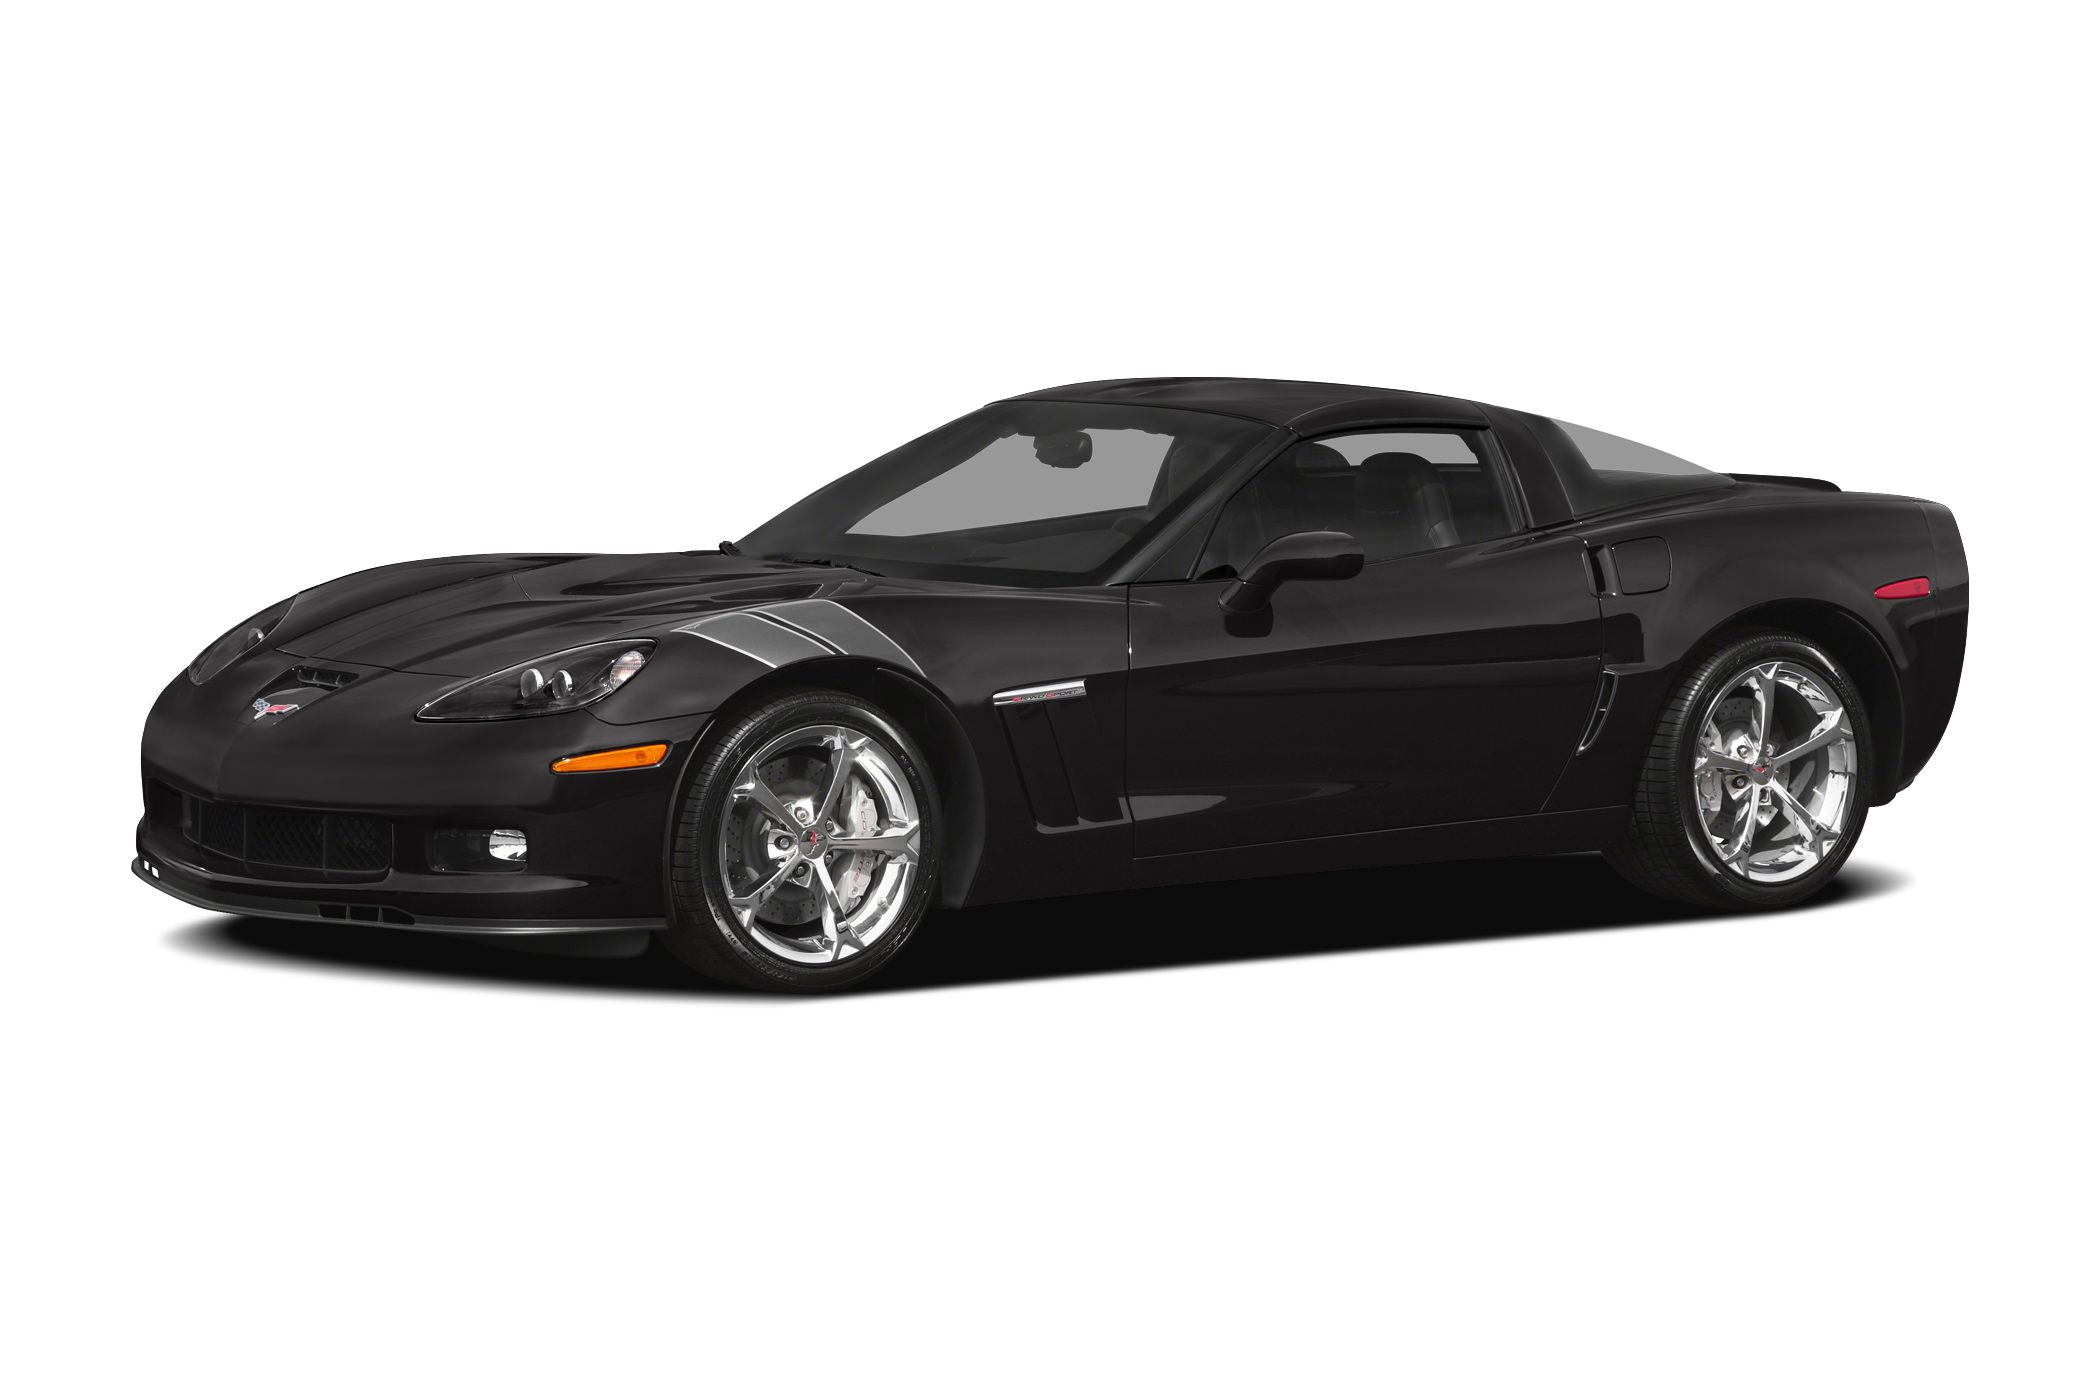 2011 Chevrolet Corvette Grand Sport LOCAL TRADE-IN WITH LOW MILES Buy with confidence - local tr